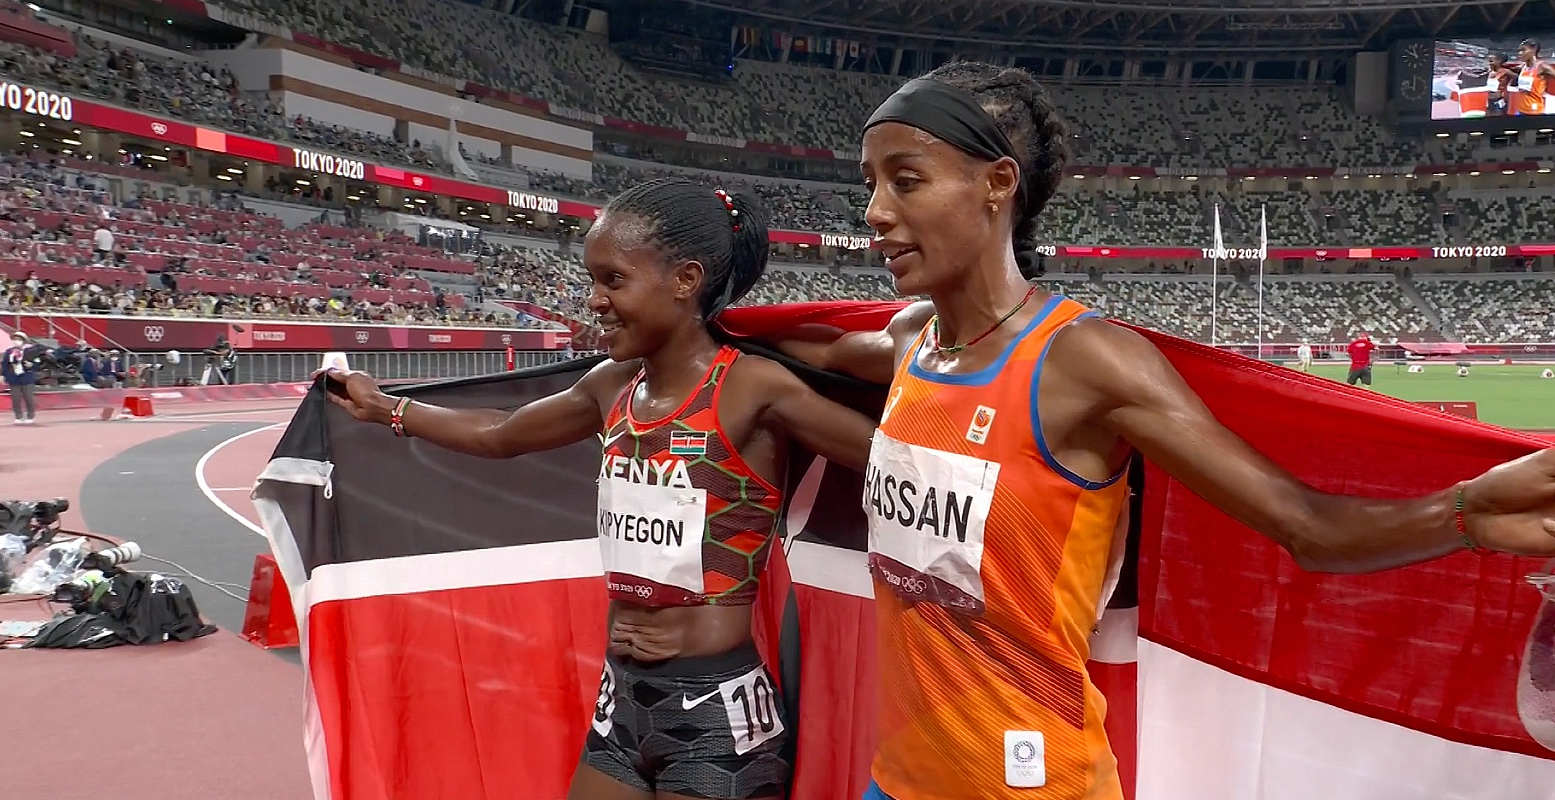 Faith-Kipyegon-and-Sifan-Hassan-in-Tokyo-2020